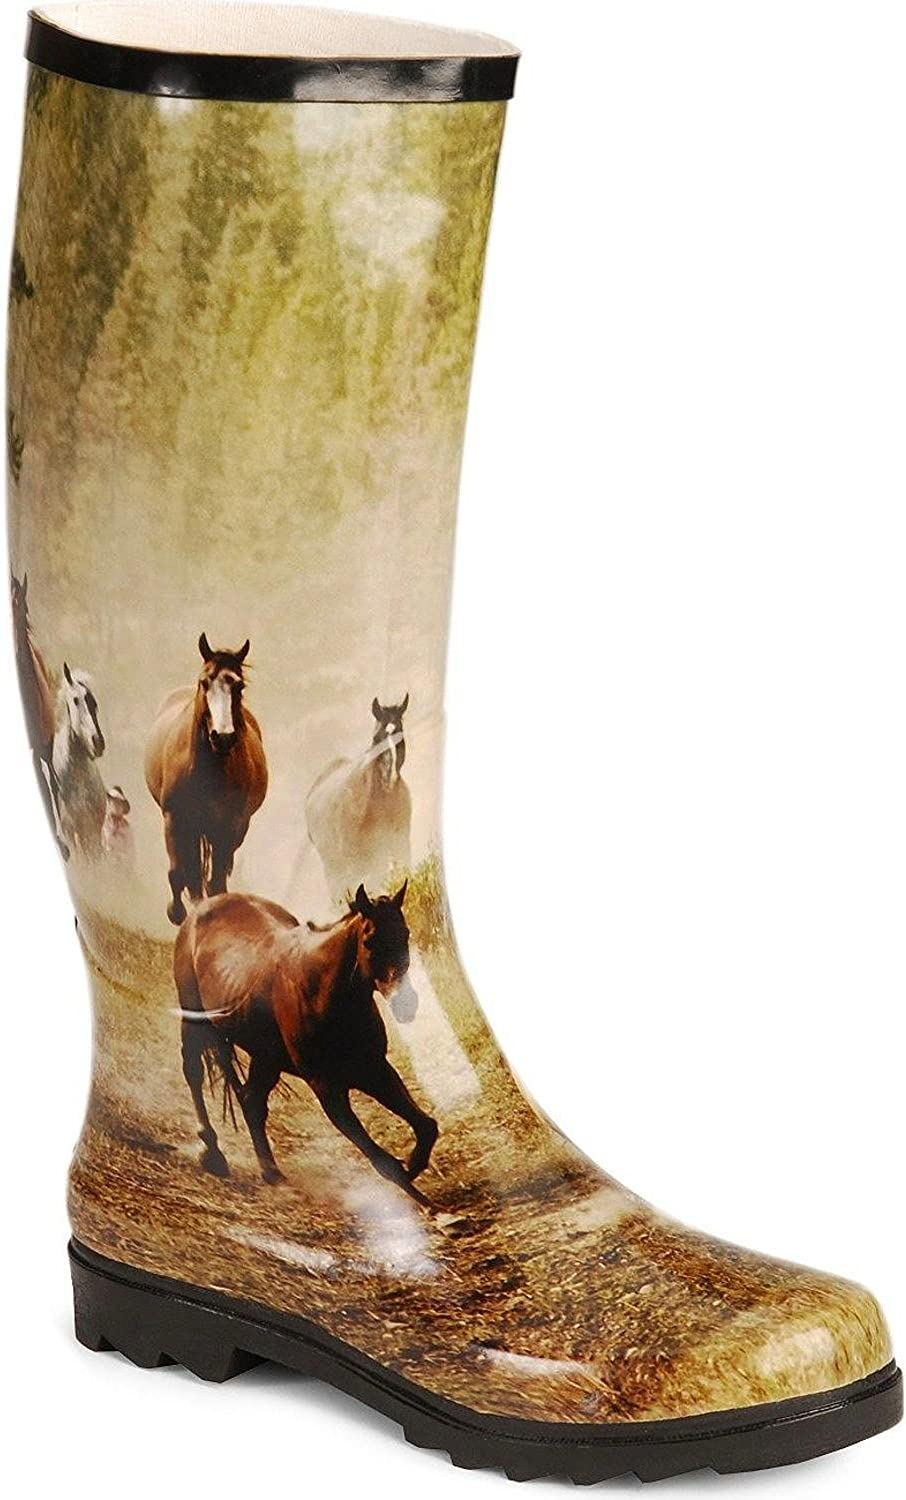 Smoky Mountain Running Horses Wellington Rubber Boots - 10